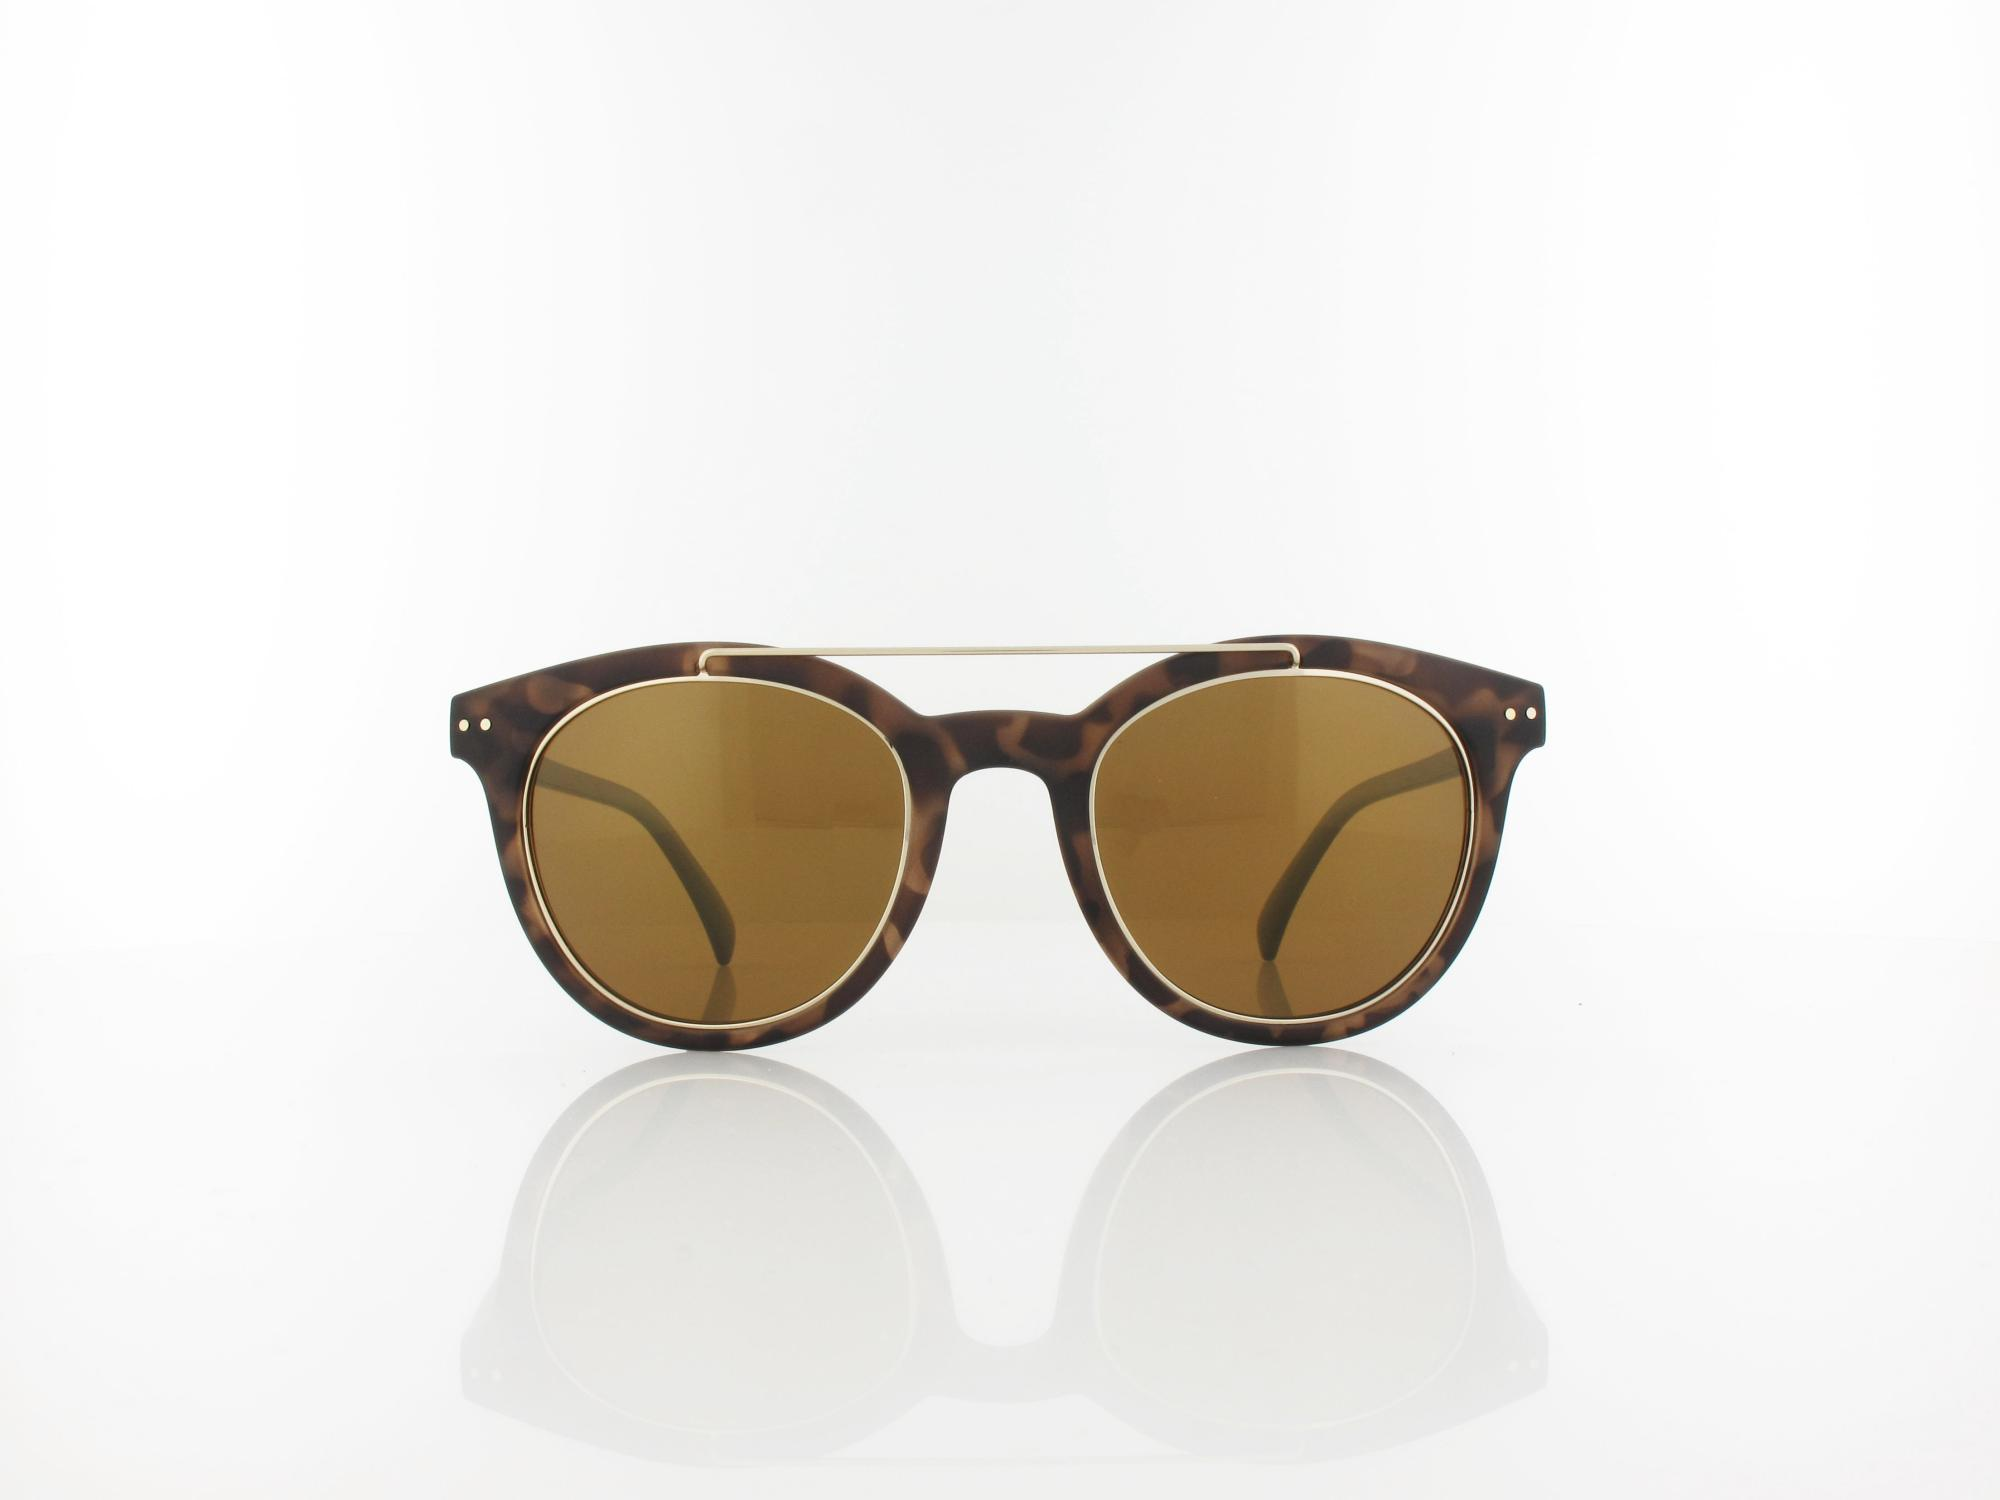 HIS polarized | HPS88102-2 50 | brown pattern / gold mirror polarized